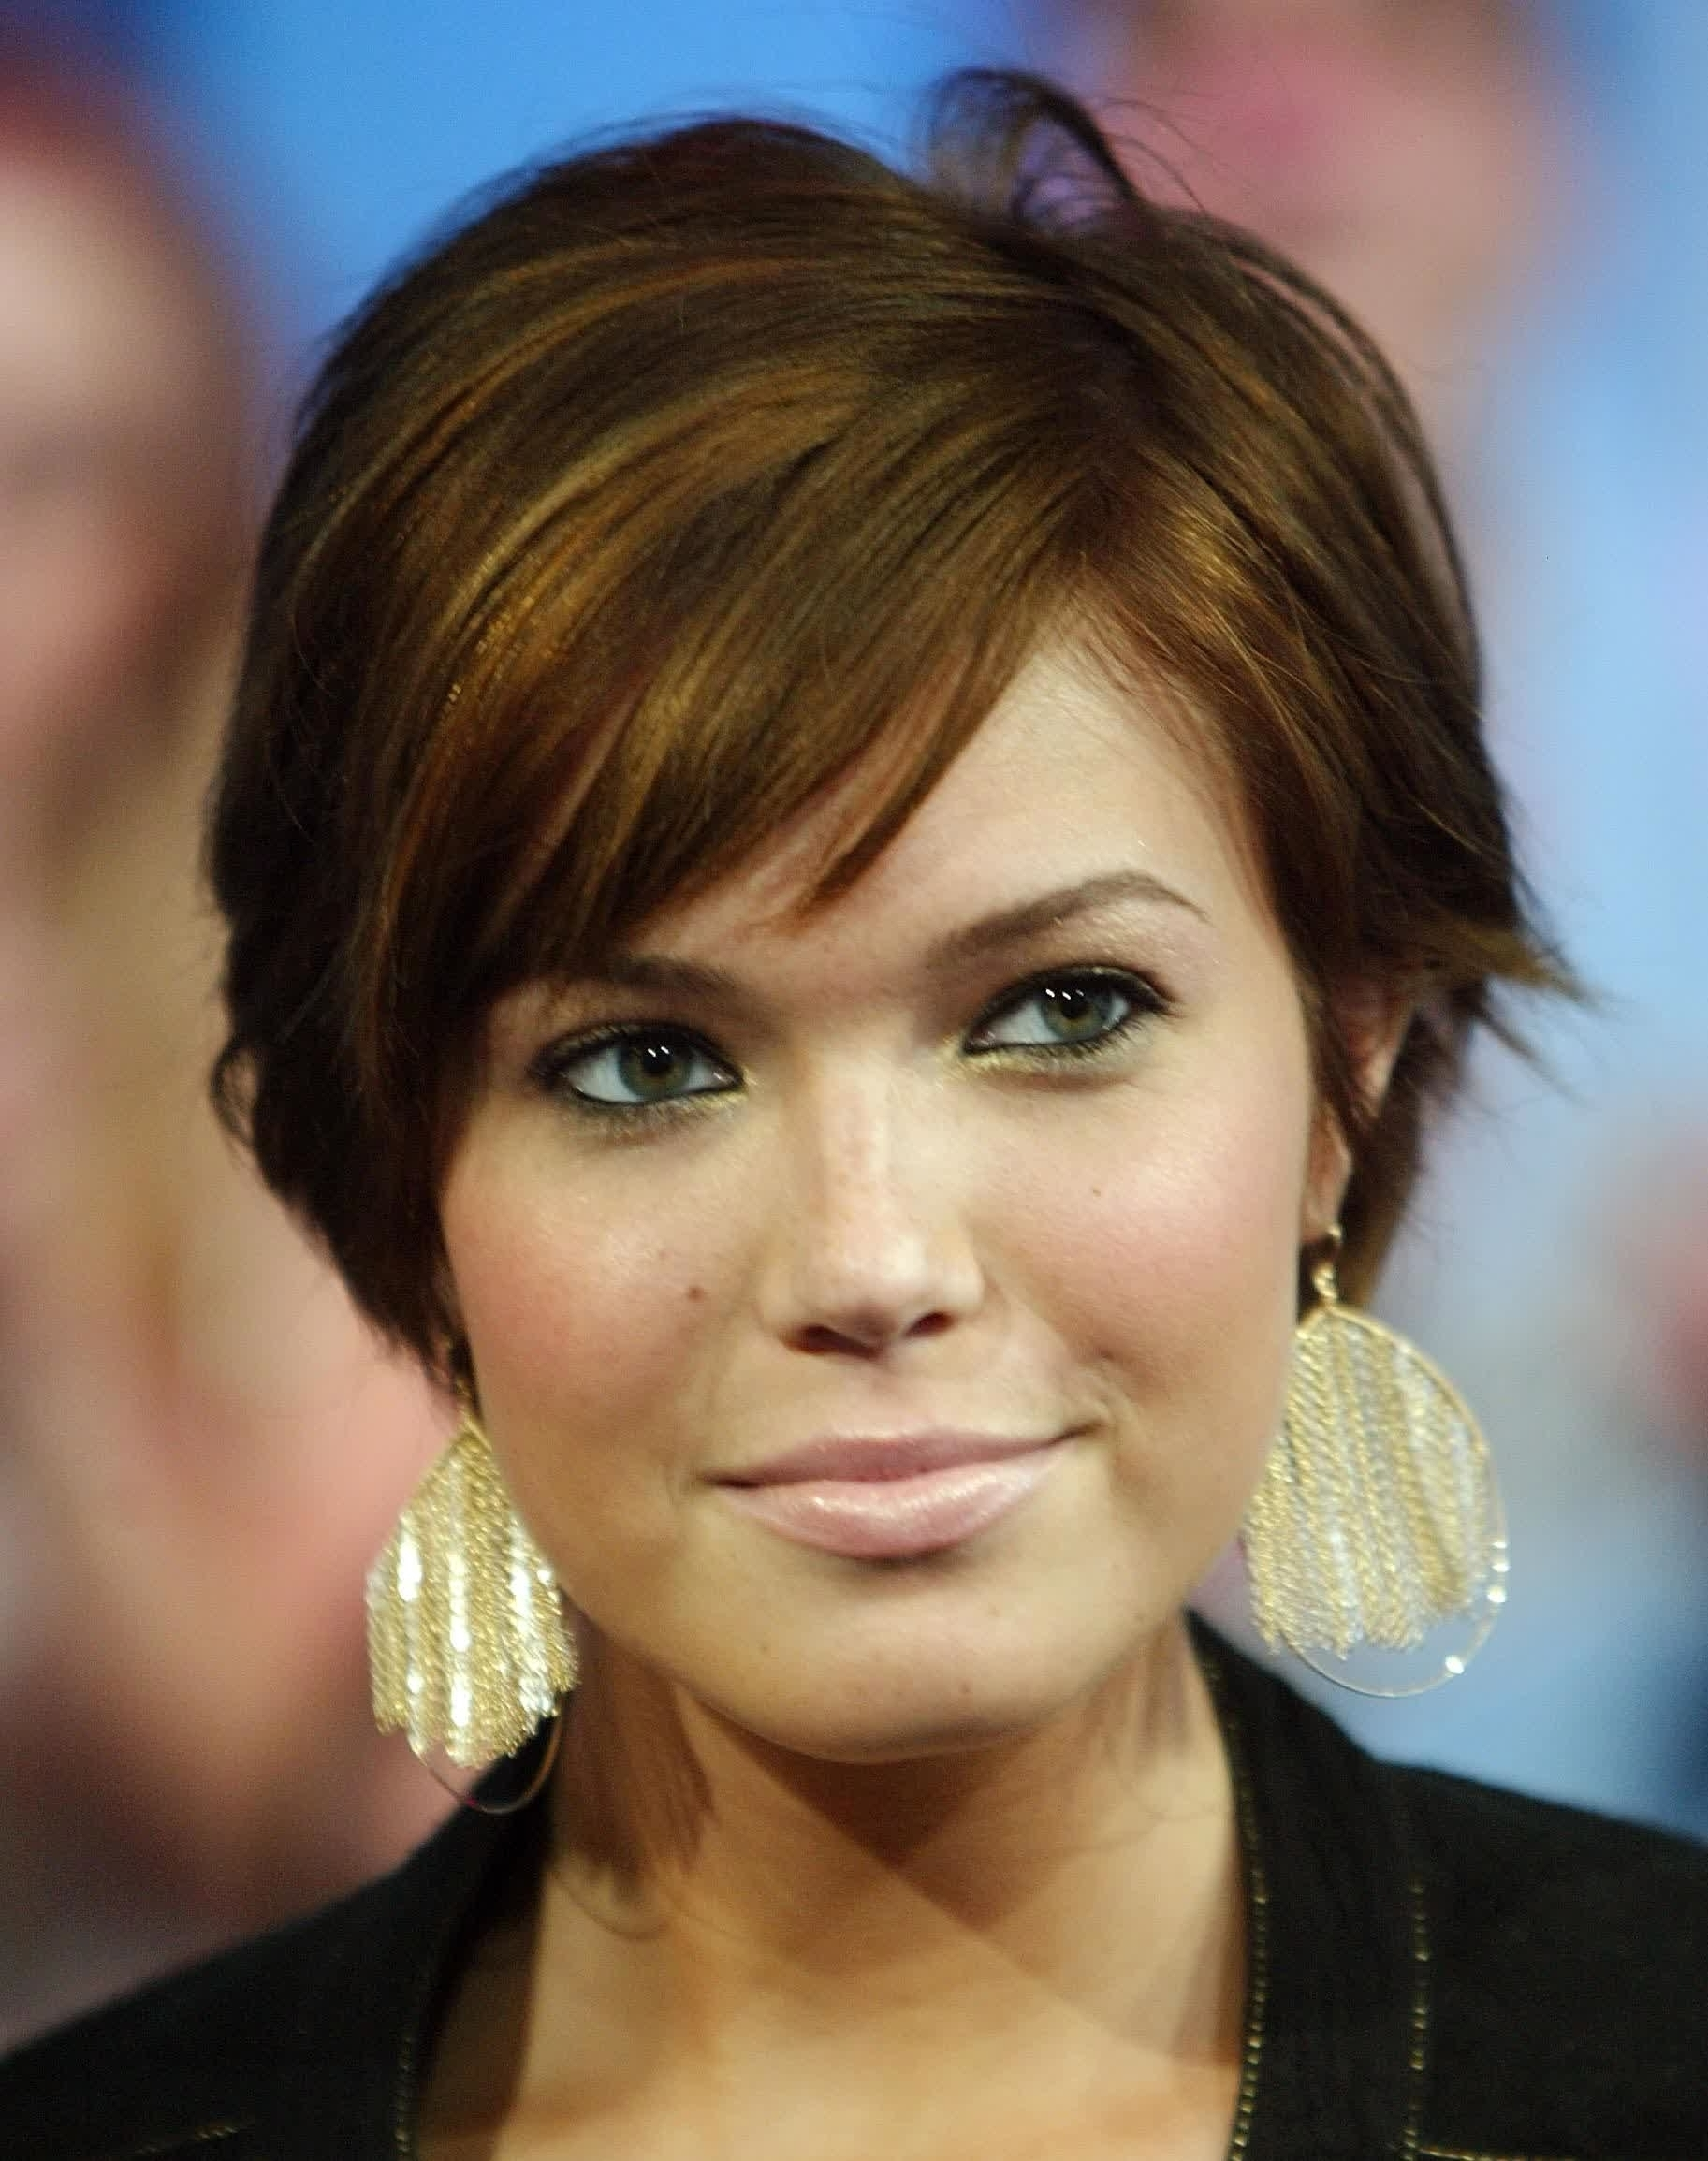 Best 15 of Pixie Hairstyles For Fat Face